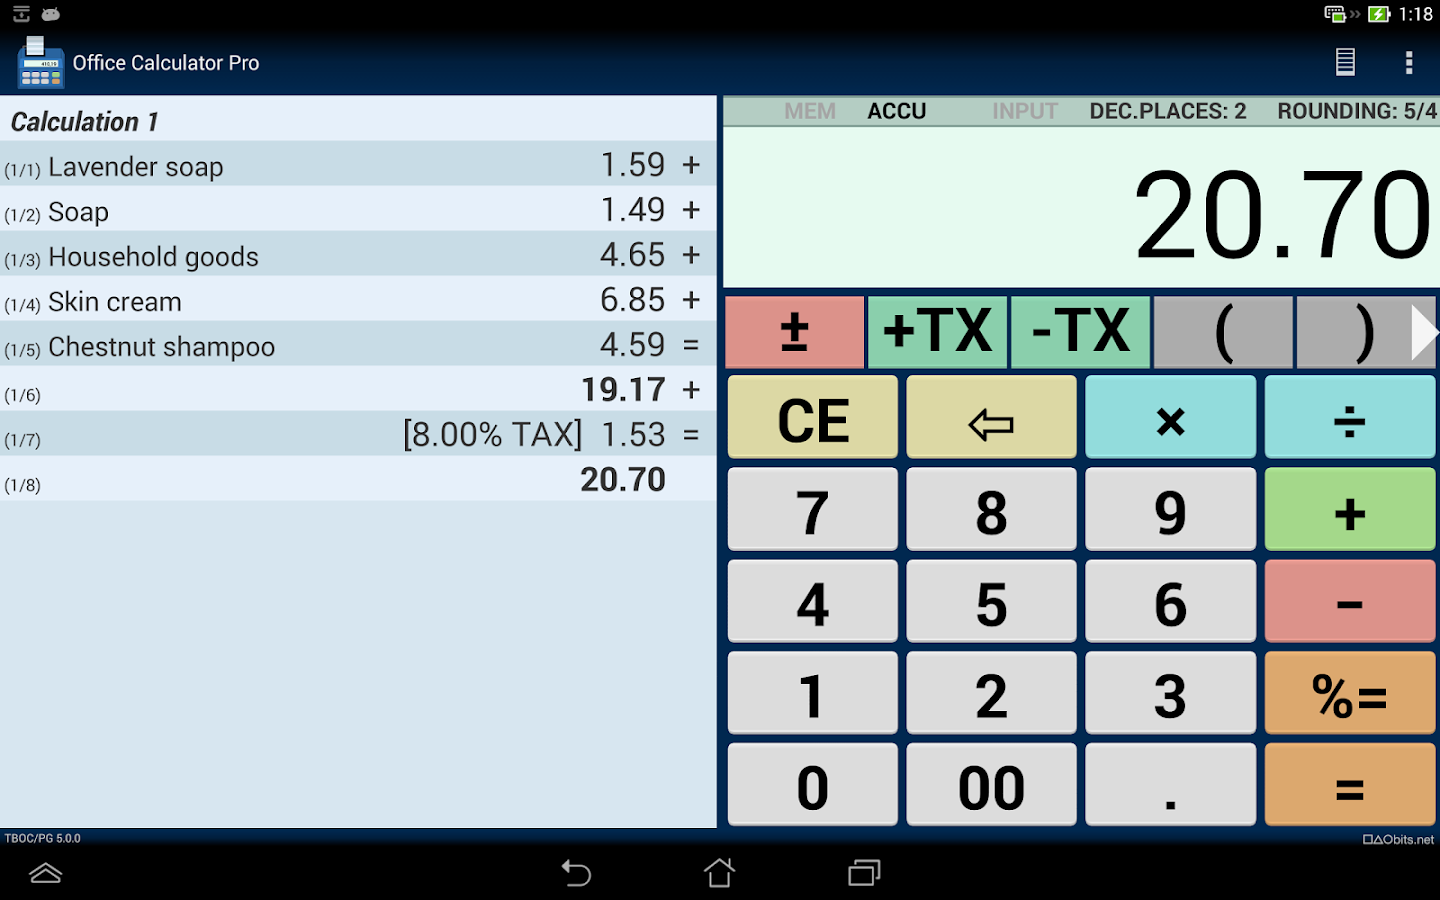 Office Calculator Pro Screenshot 5